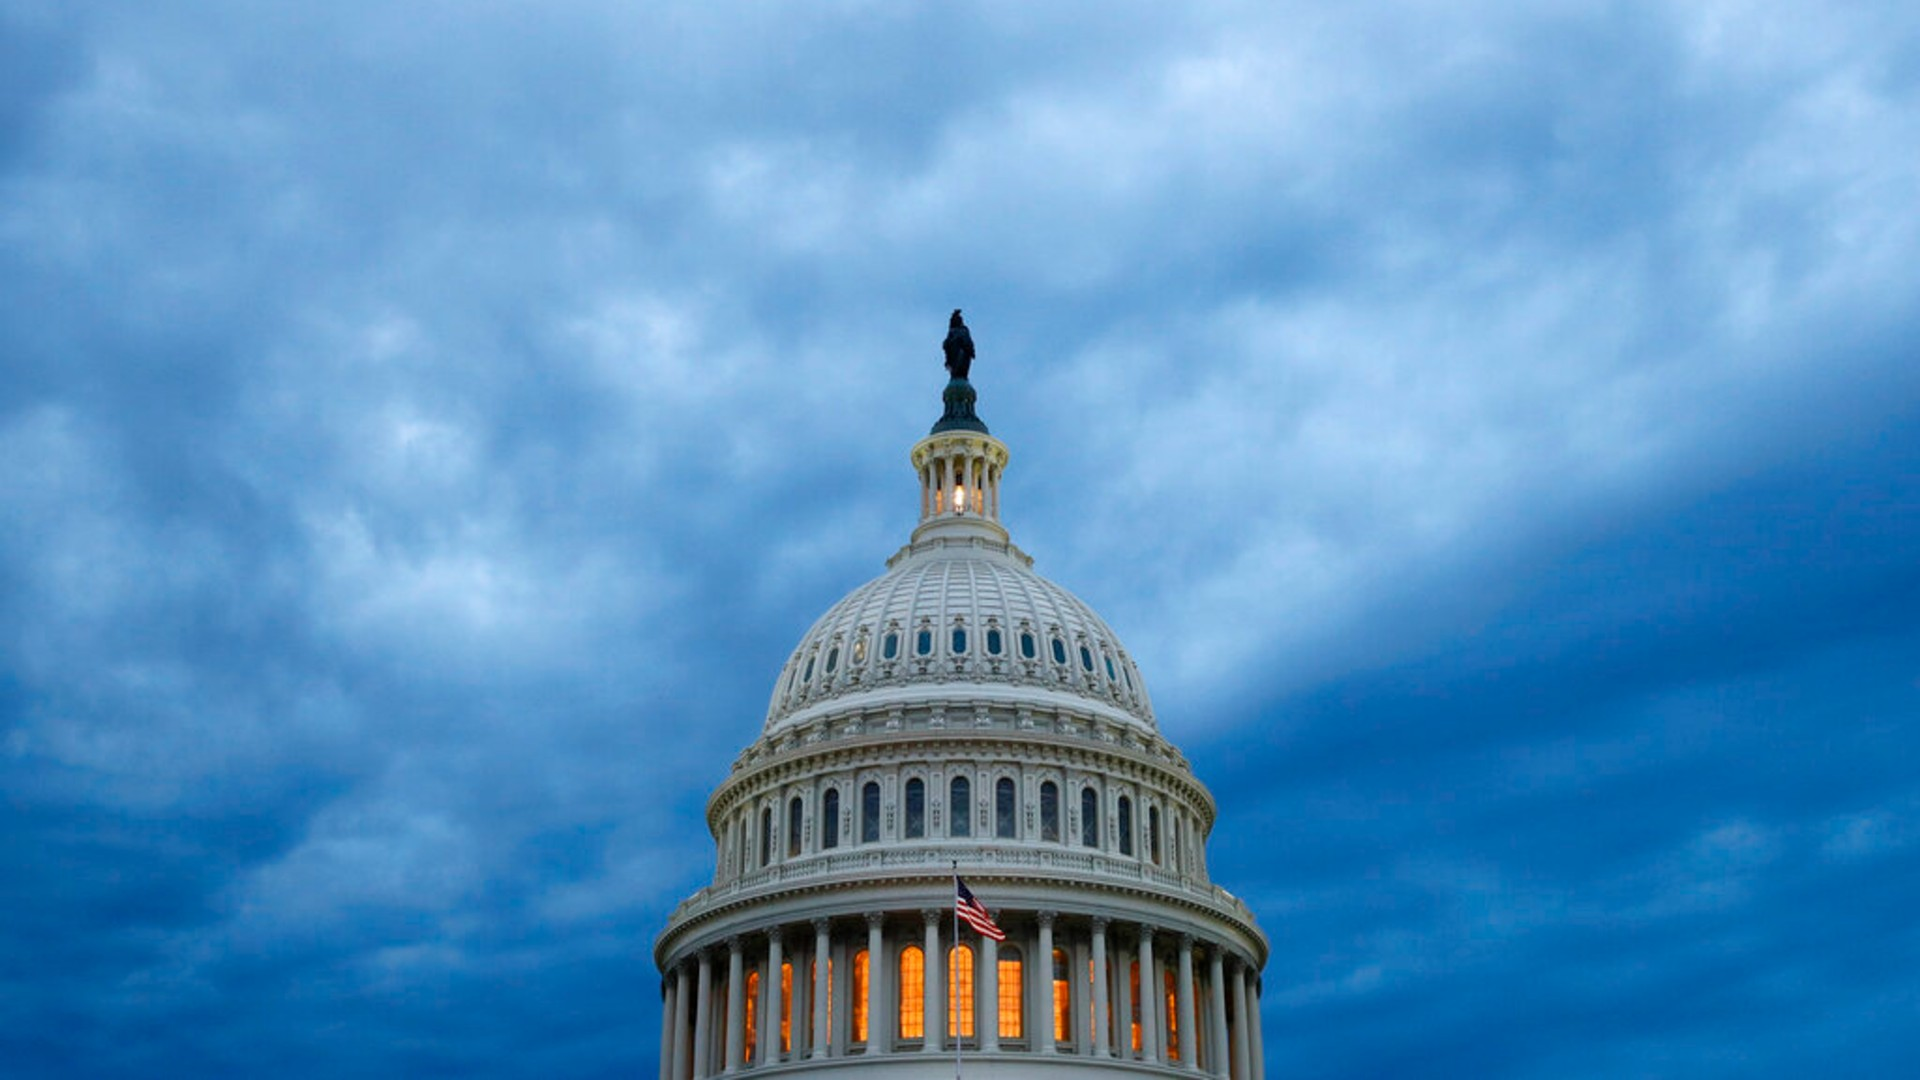 In this June 12, 2019, file photo, clouds roll over the U.S. Capitol dome as dusk approaches in Washington. (AP Photo/Patrick Semansky, File)